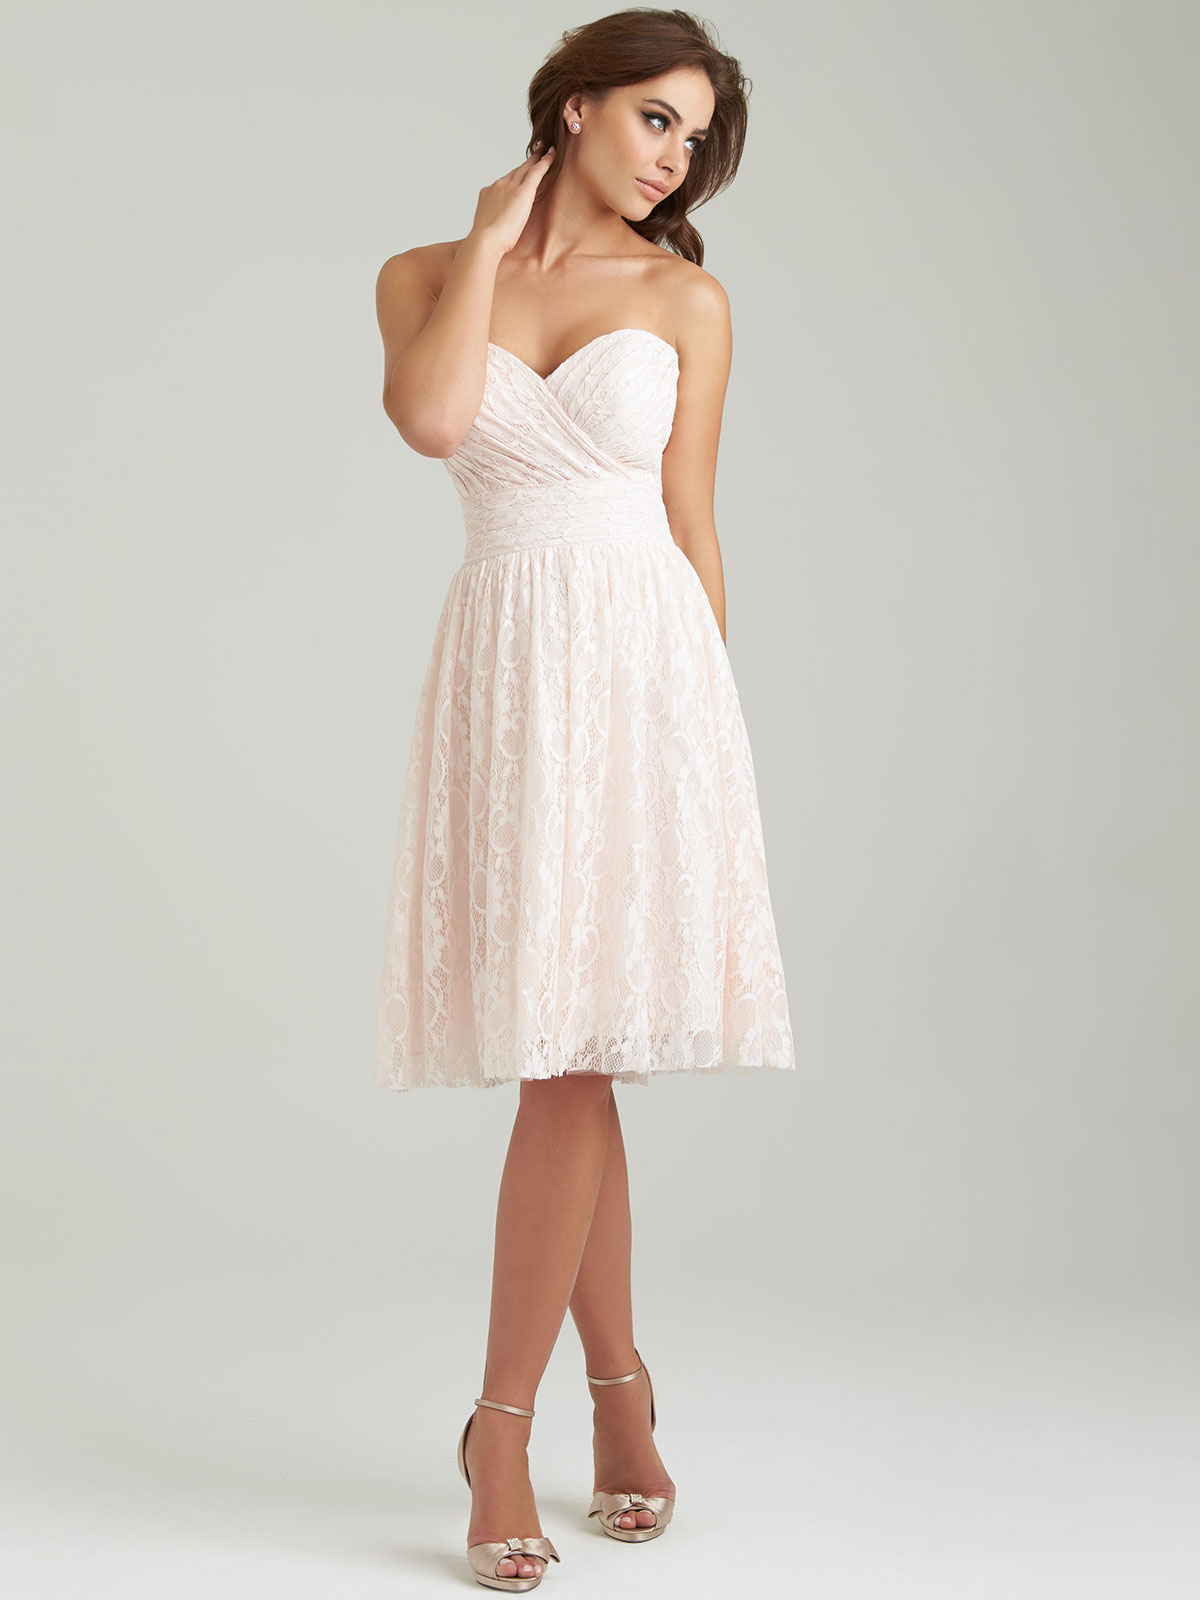 Allure 1458 sweetheart short a line bridesmaid dress allure 1458 sweetheart bridesmaid dress ombrellifo Choice Image